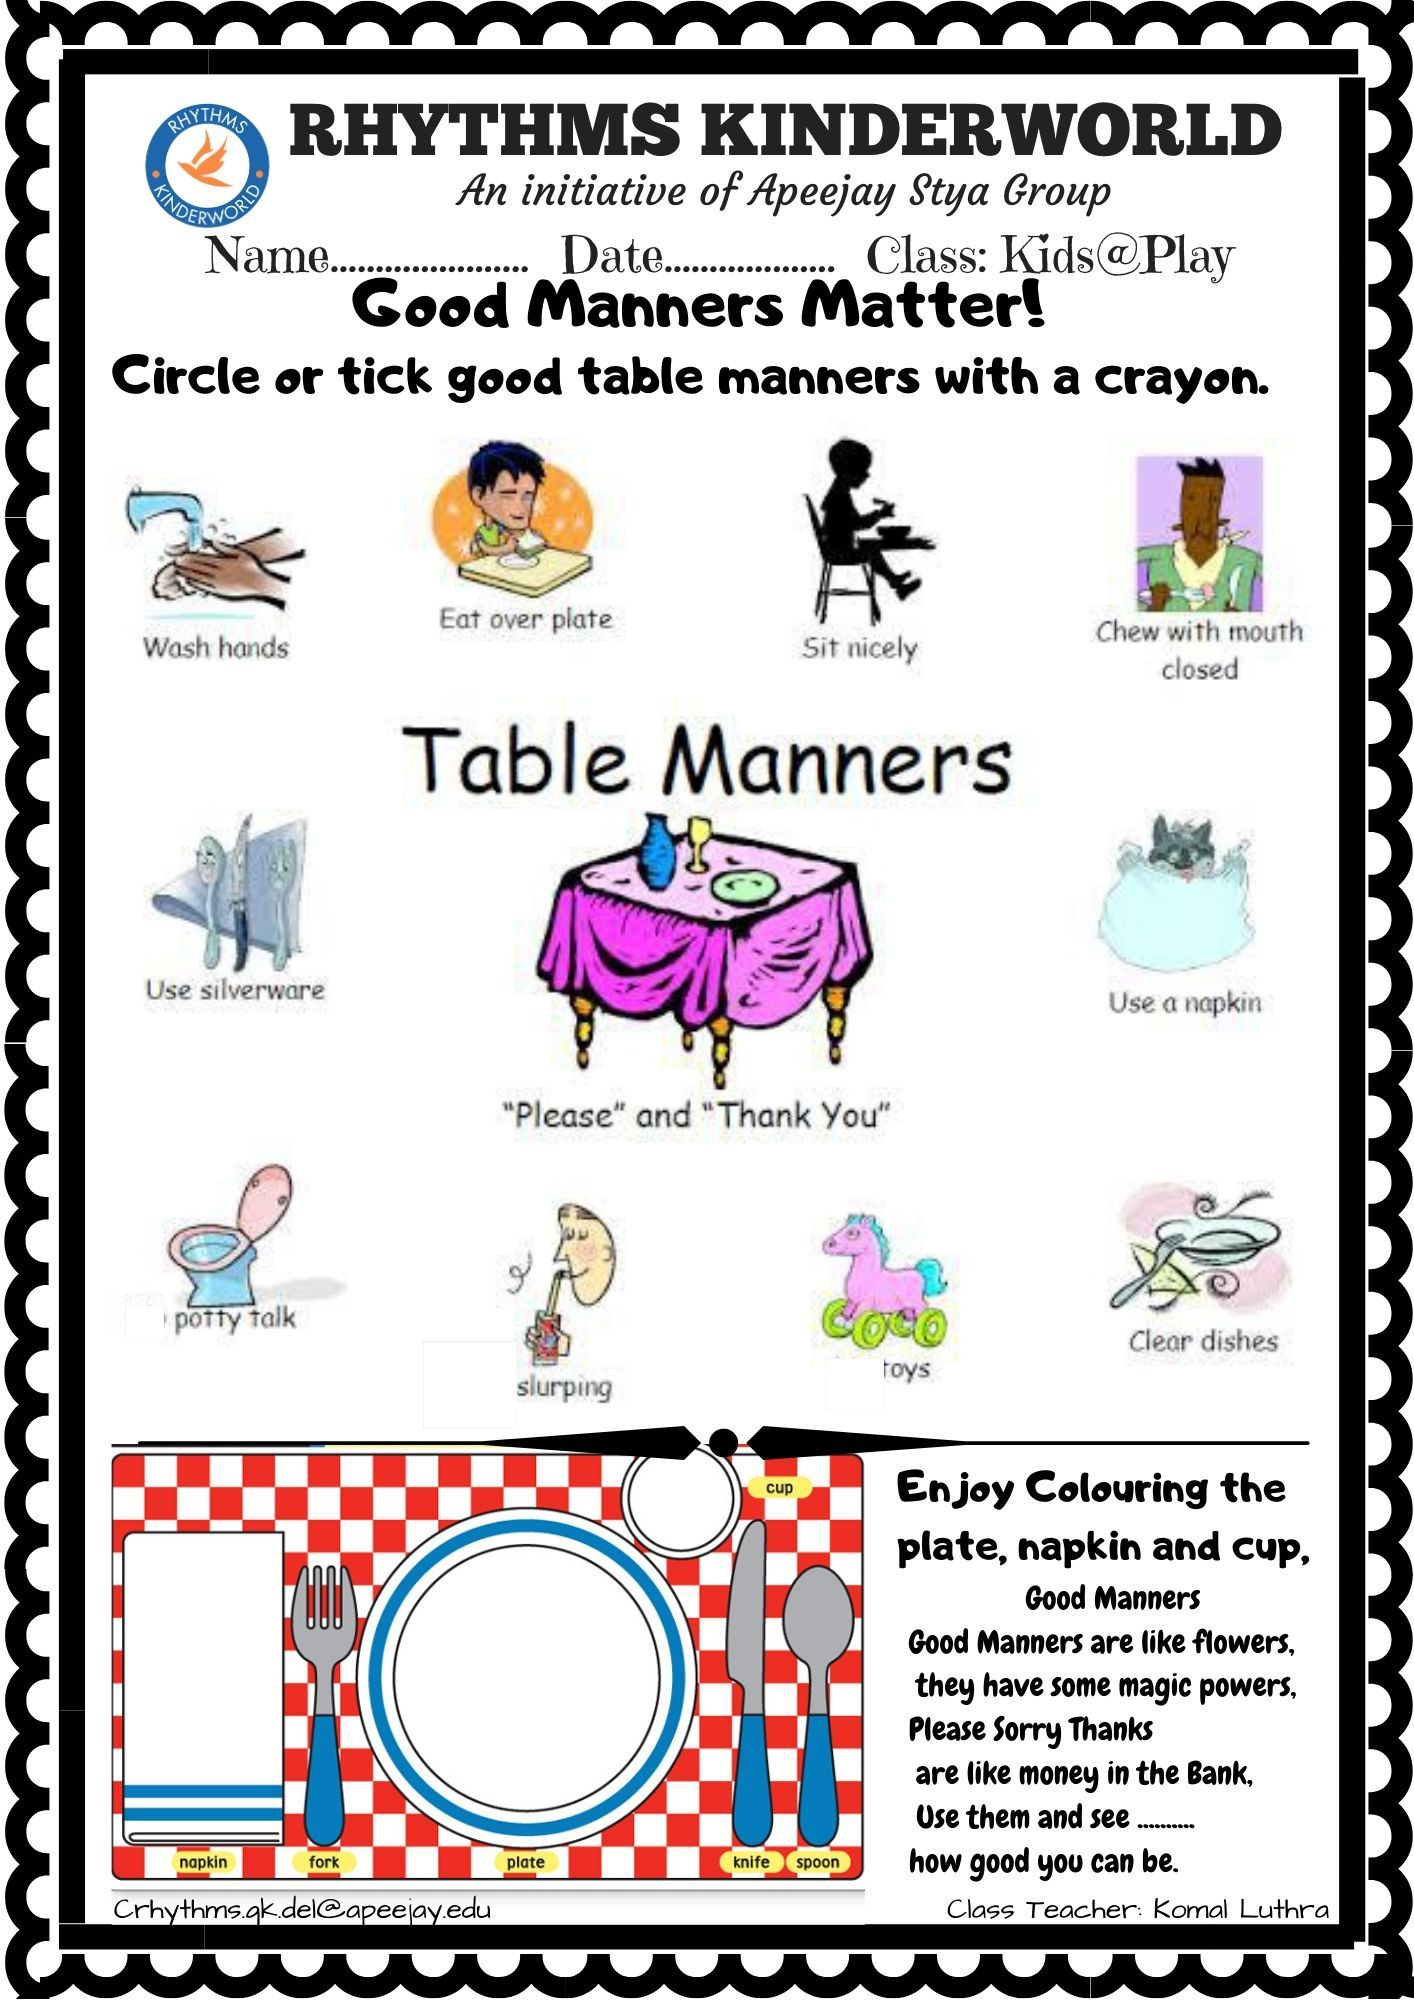 Worksheet On Good Manners In